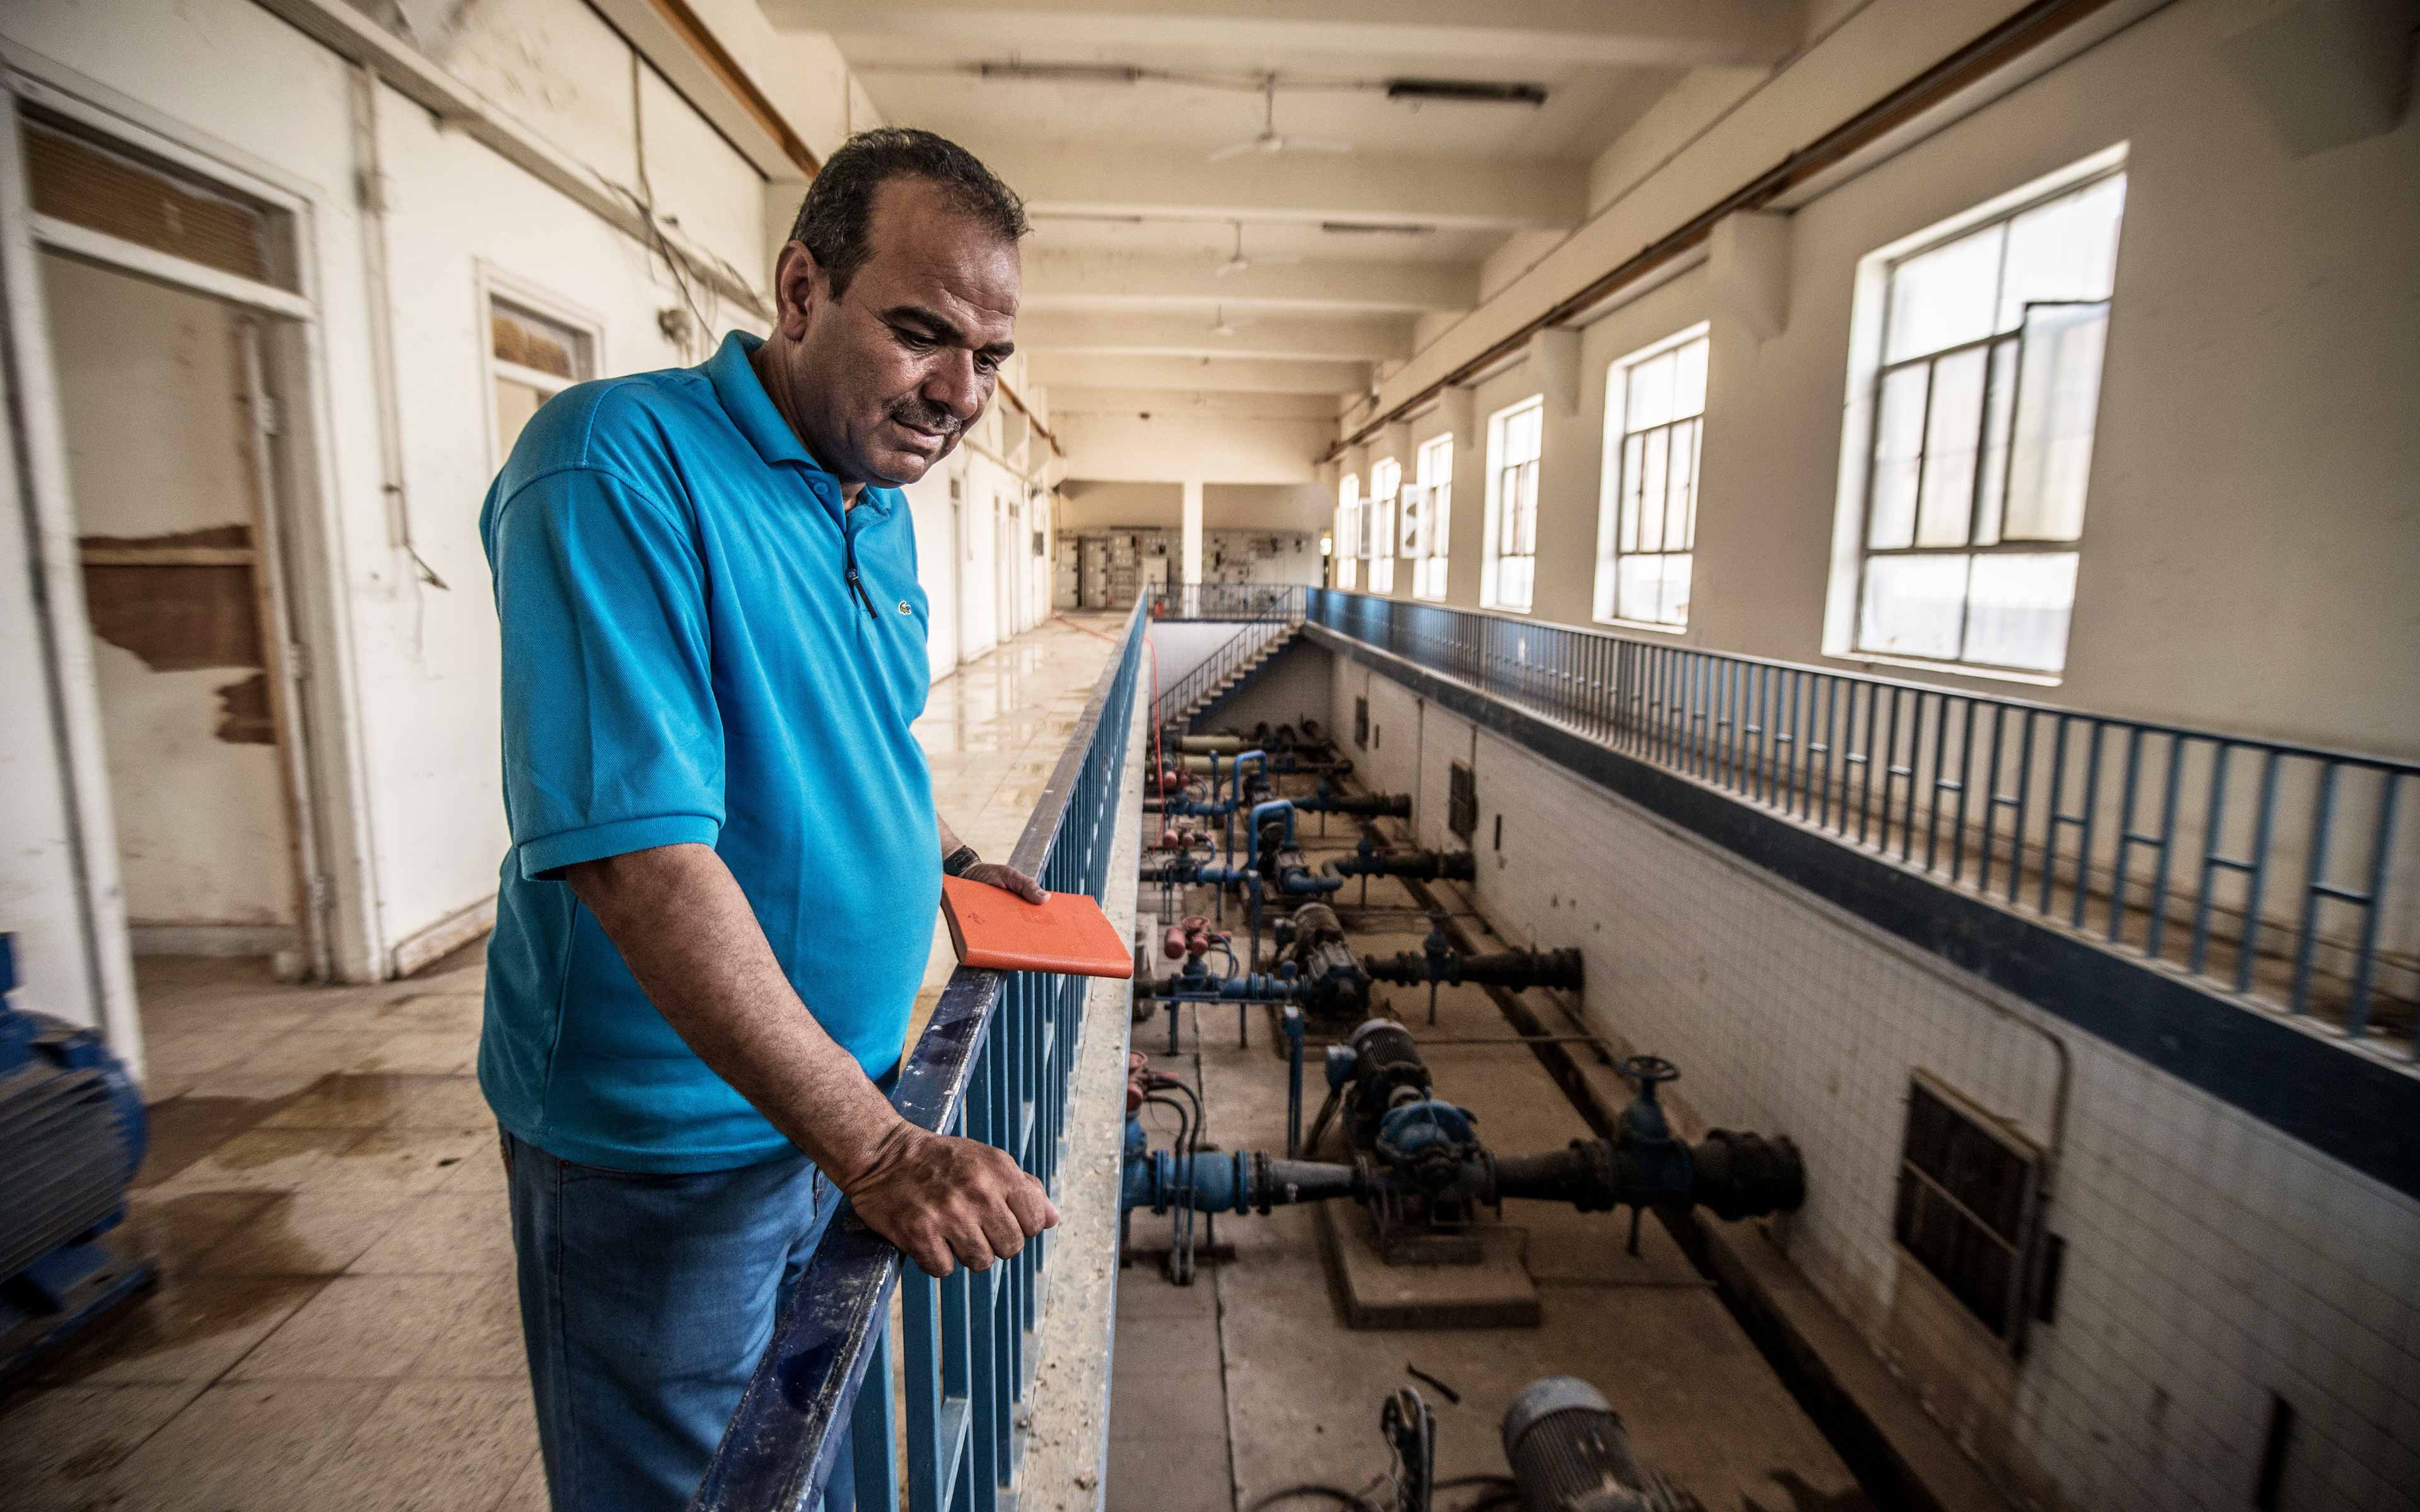 The director of the water plant in the Iraqi town of Saadiya was among the first to return after the community was reclaimed from ISIS. With Oxfam's help, the water department was able to repair a good deal of the infrastructure and provide water to returning residents.